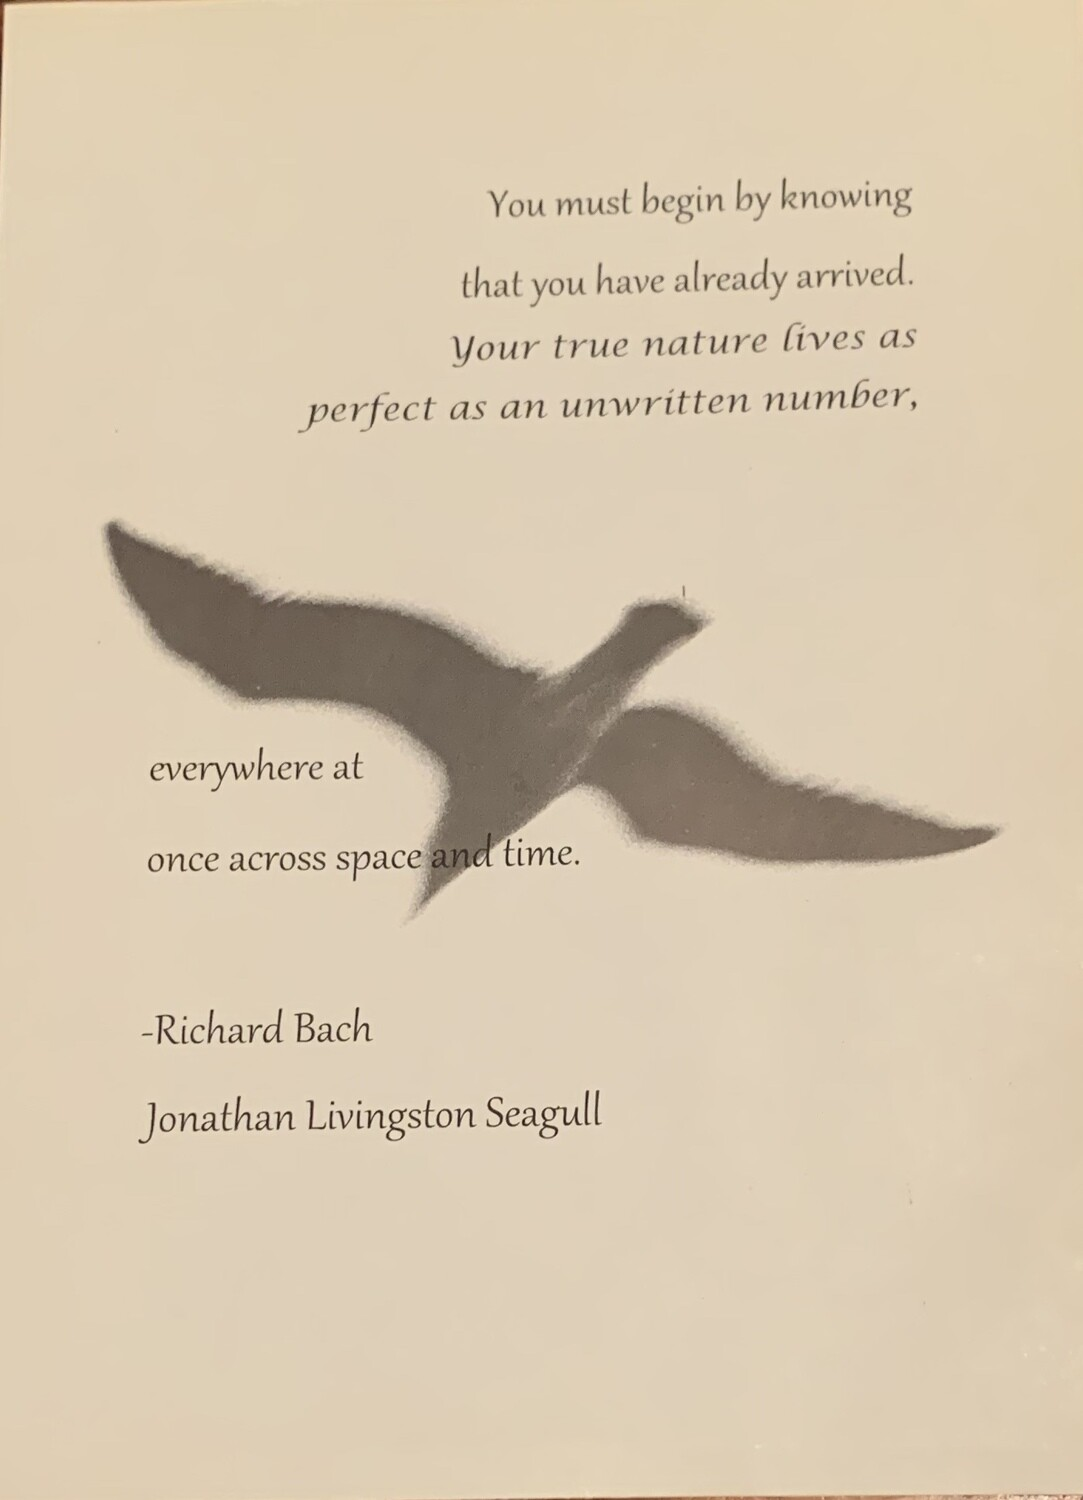 Jonathan Livingston Seagull Quote Print